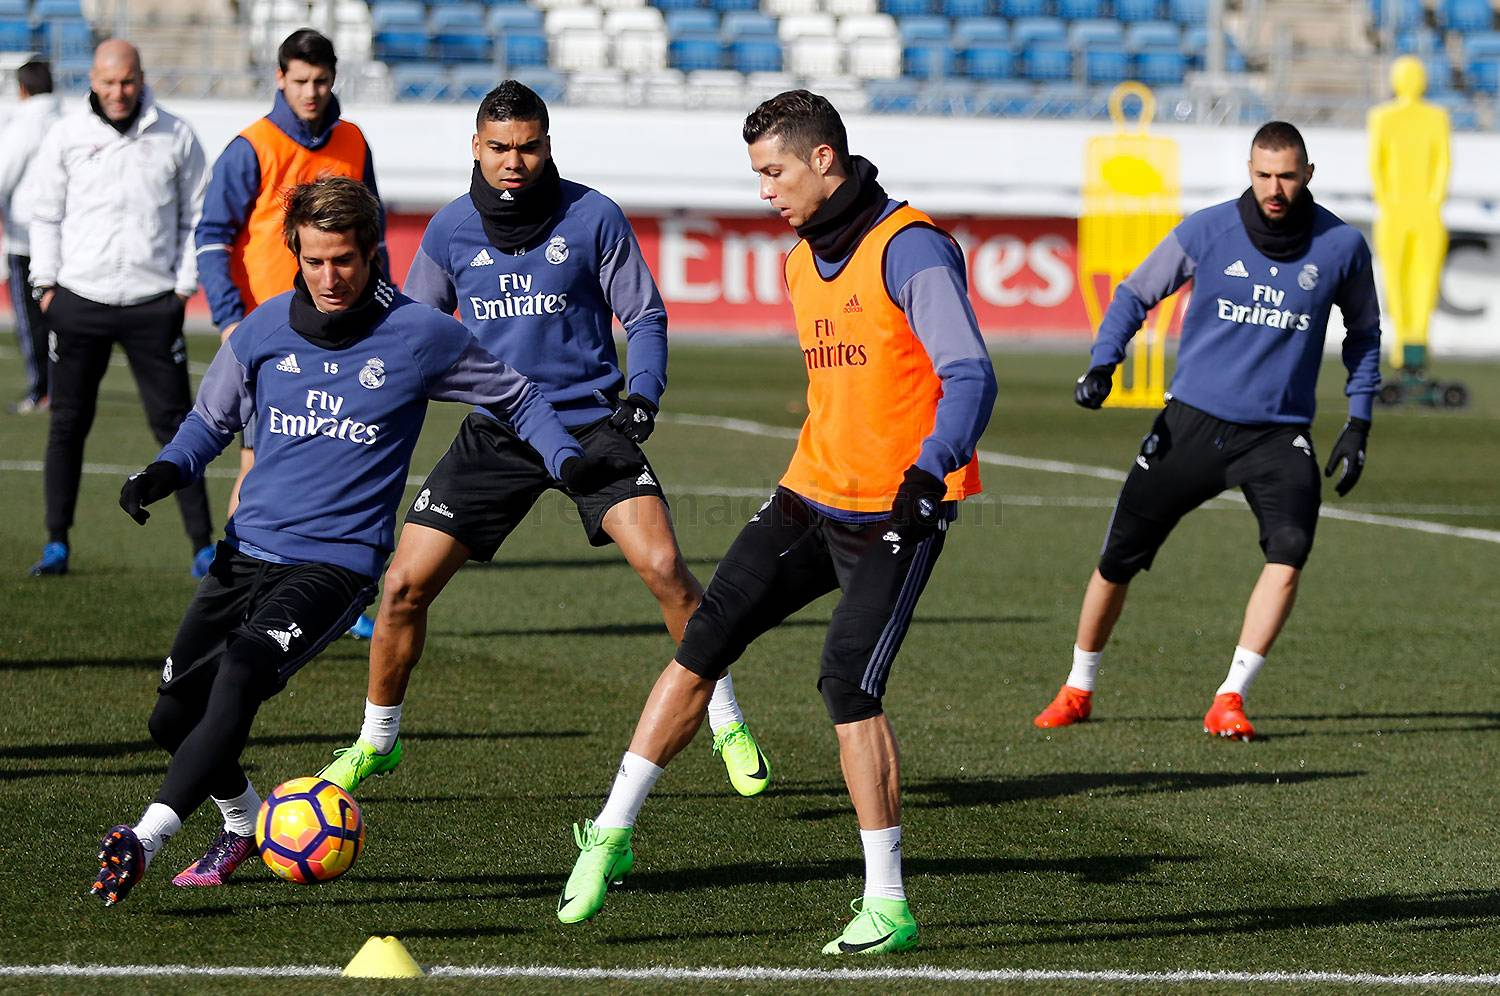 Real Madrid - Entrenamiento del Real Madrid - 09-02-2017